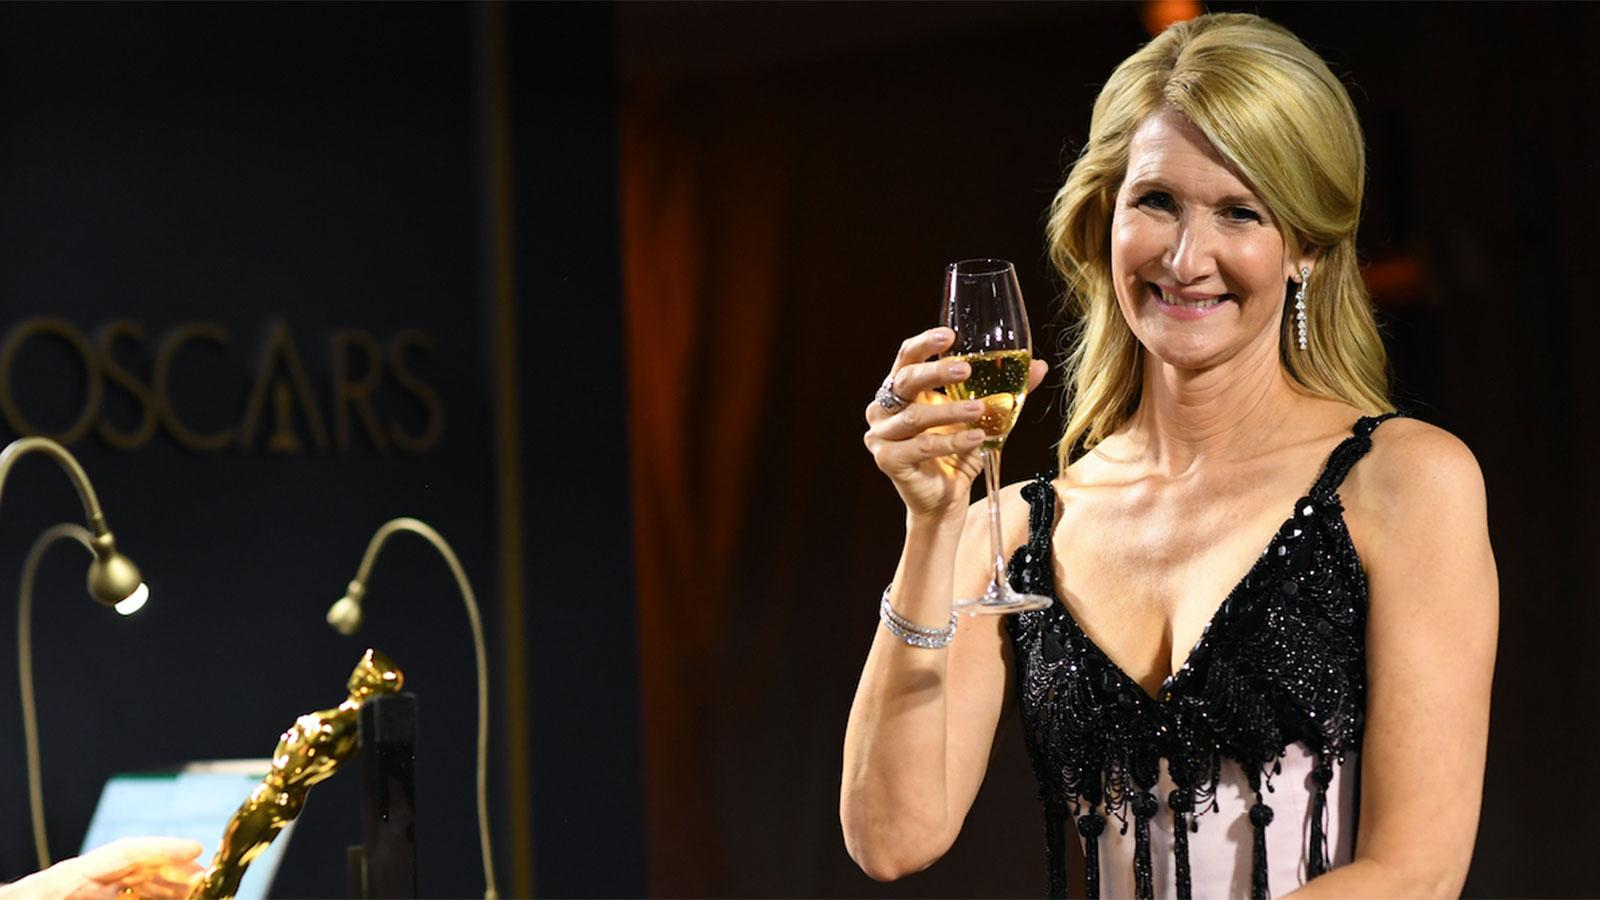 Oscars Wine Wins: 8,500 Champagne Piper Glasses, Gold Coppola Bottles and Wolfgang Puck Plates Plants